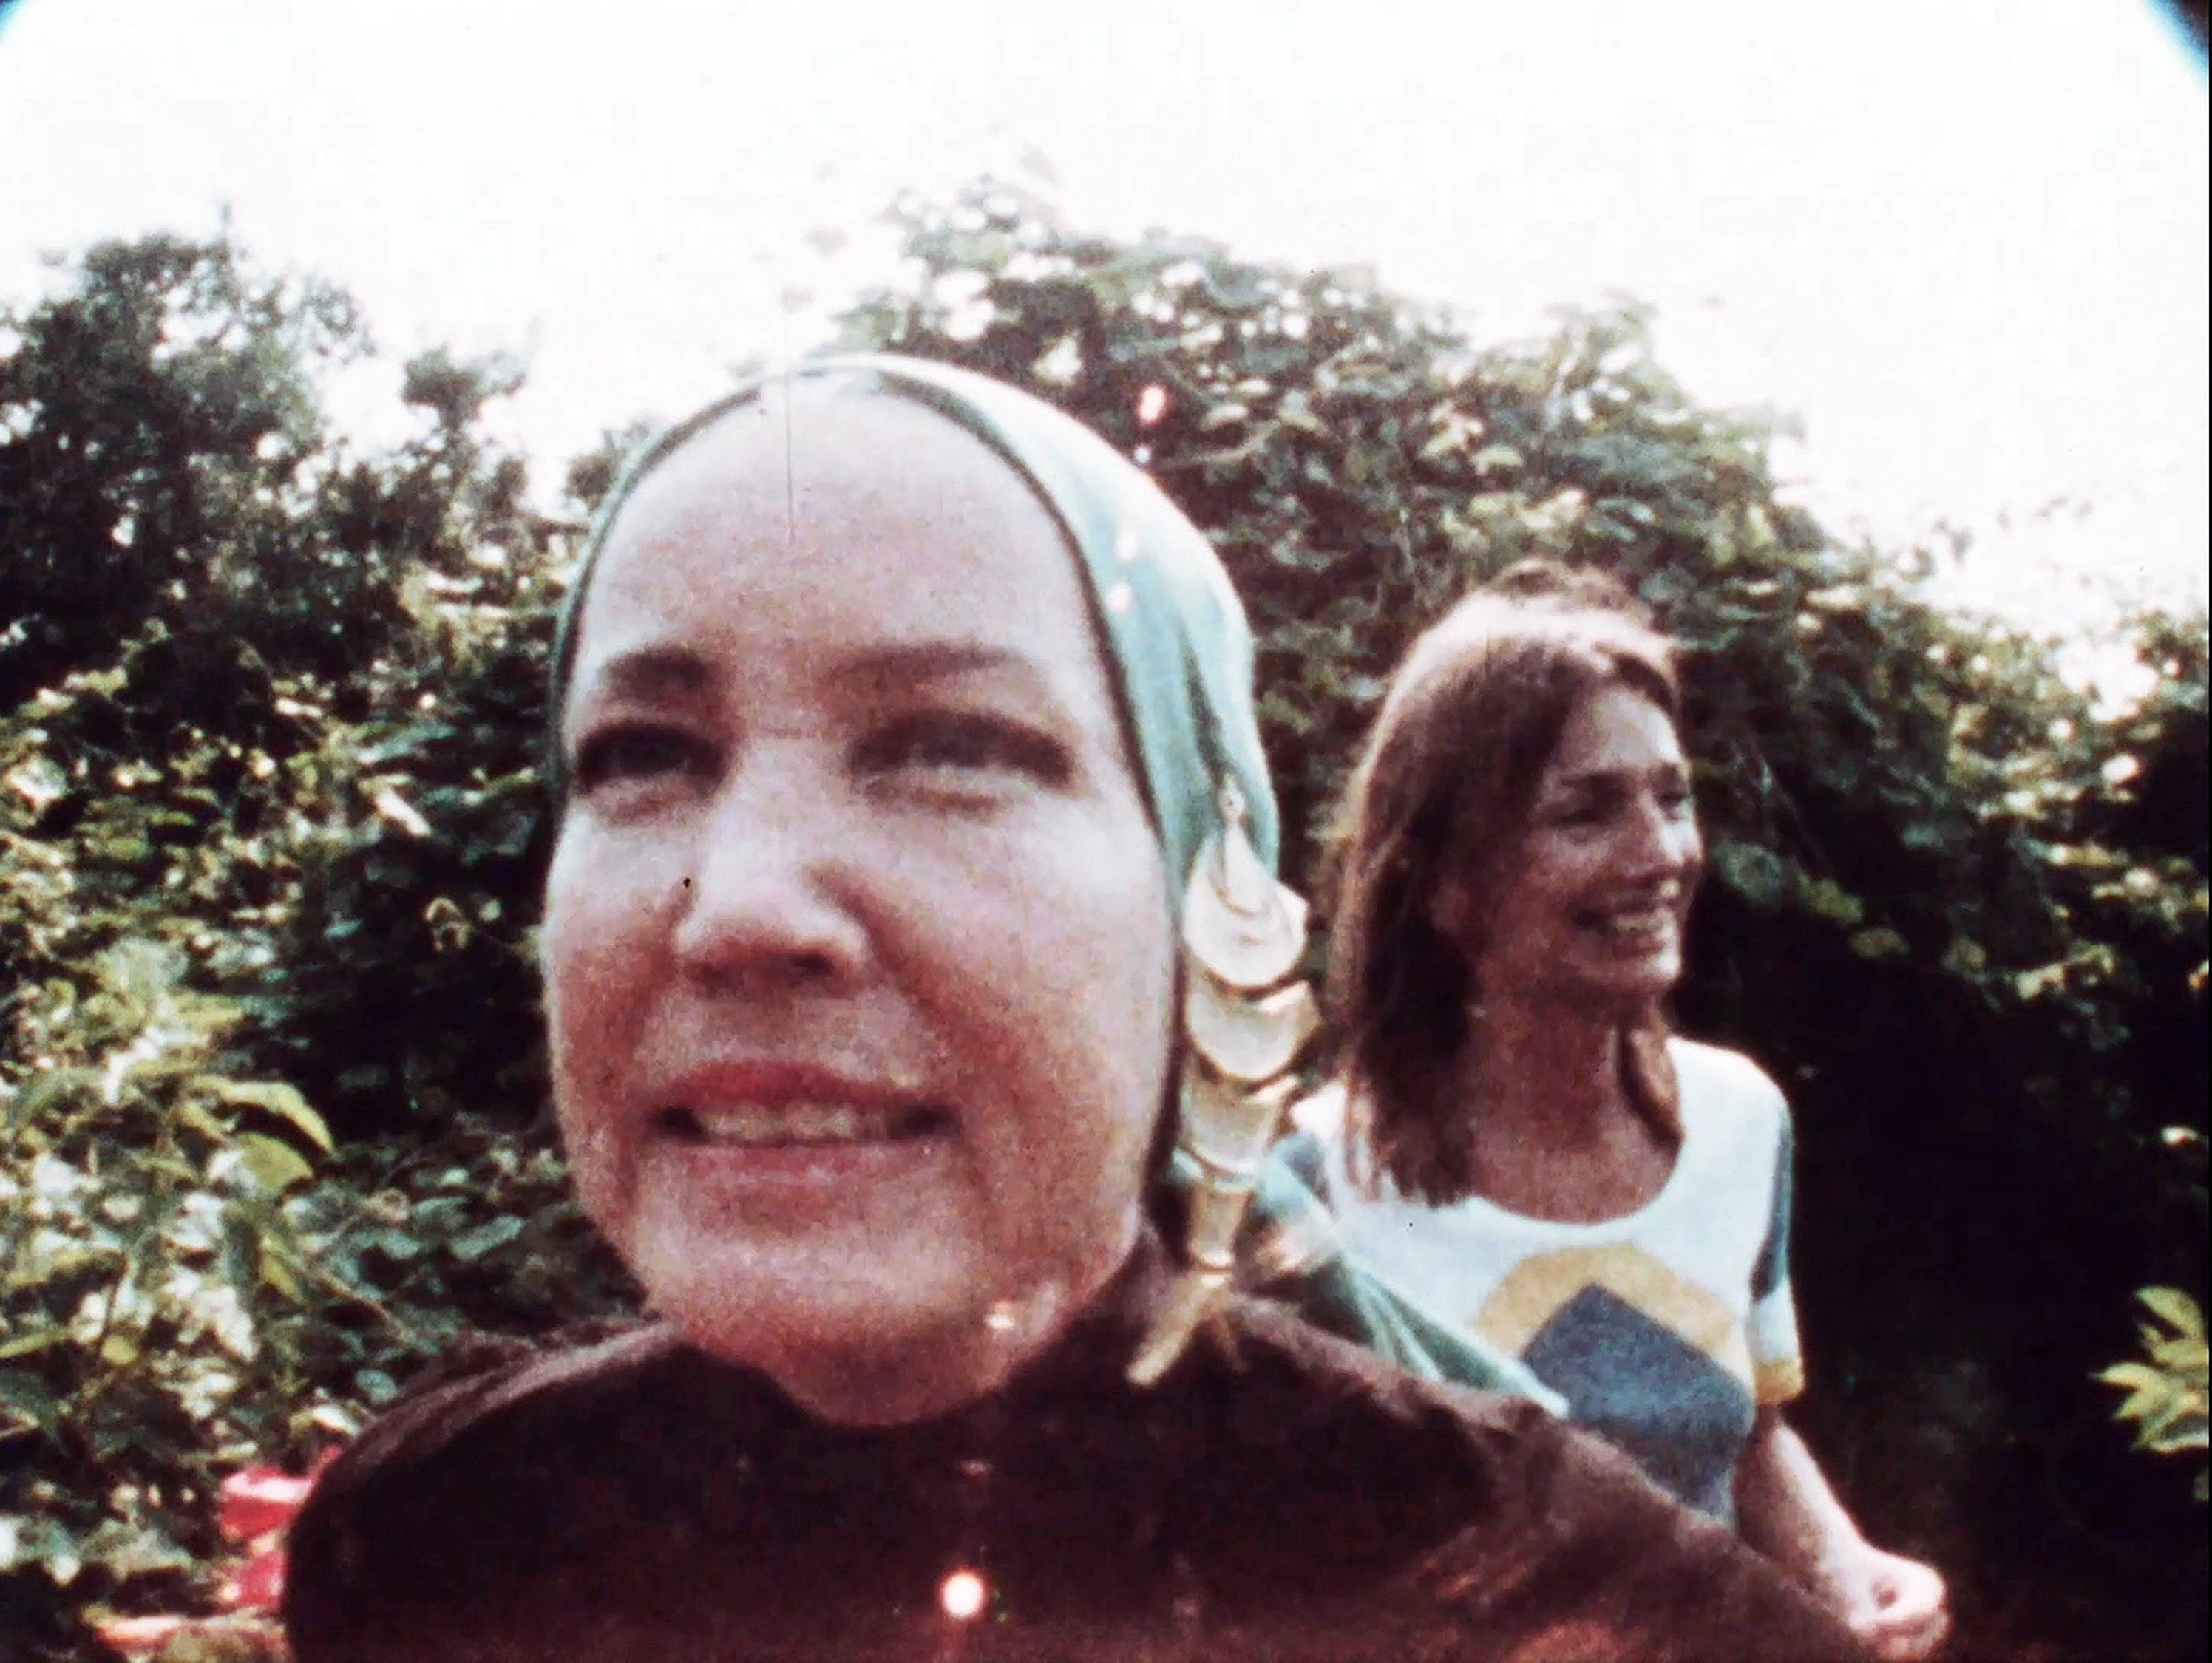 Little Edie Beale singing and Lee Radziwill in the garden of Grey Gardens